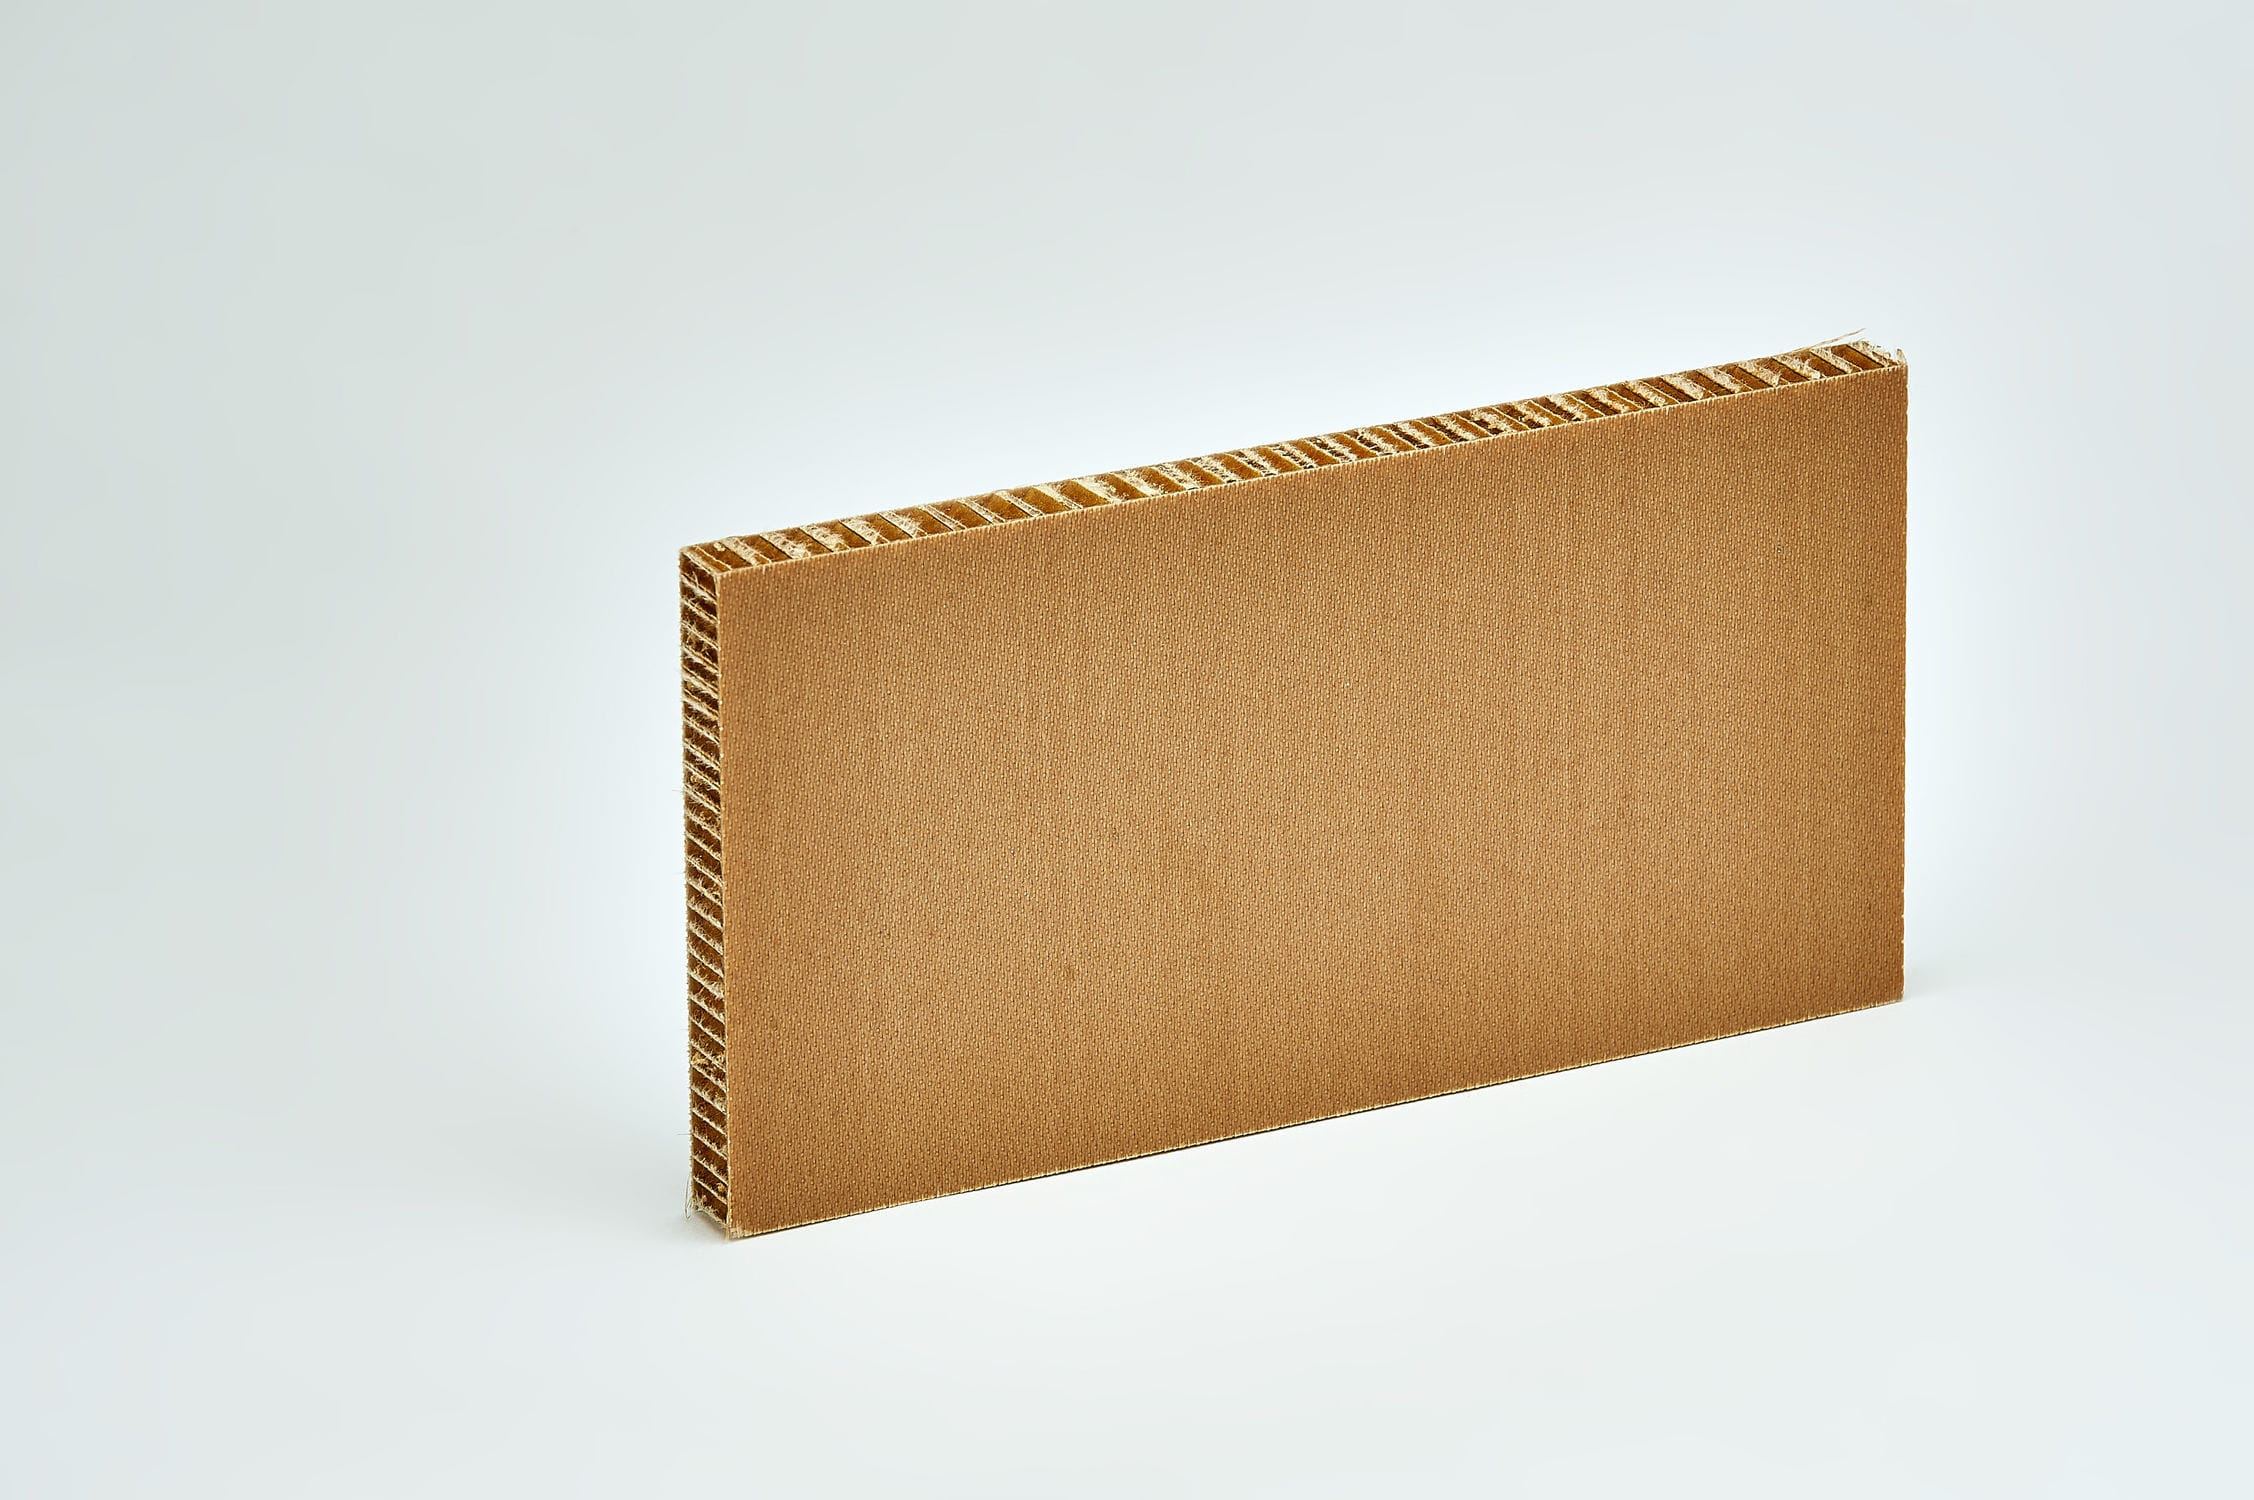 ... Aramid Fiber Honeycomb Panel / Fiberglass / For The Furniture Industry  / For Maritime Applications ALUSTEP ...